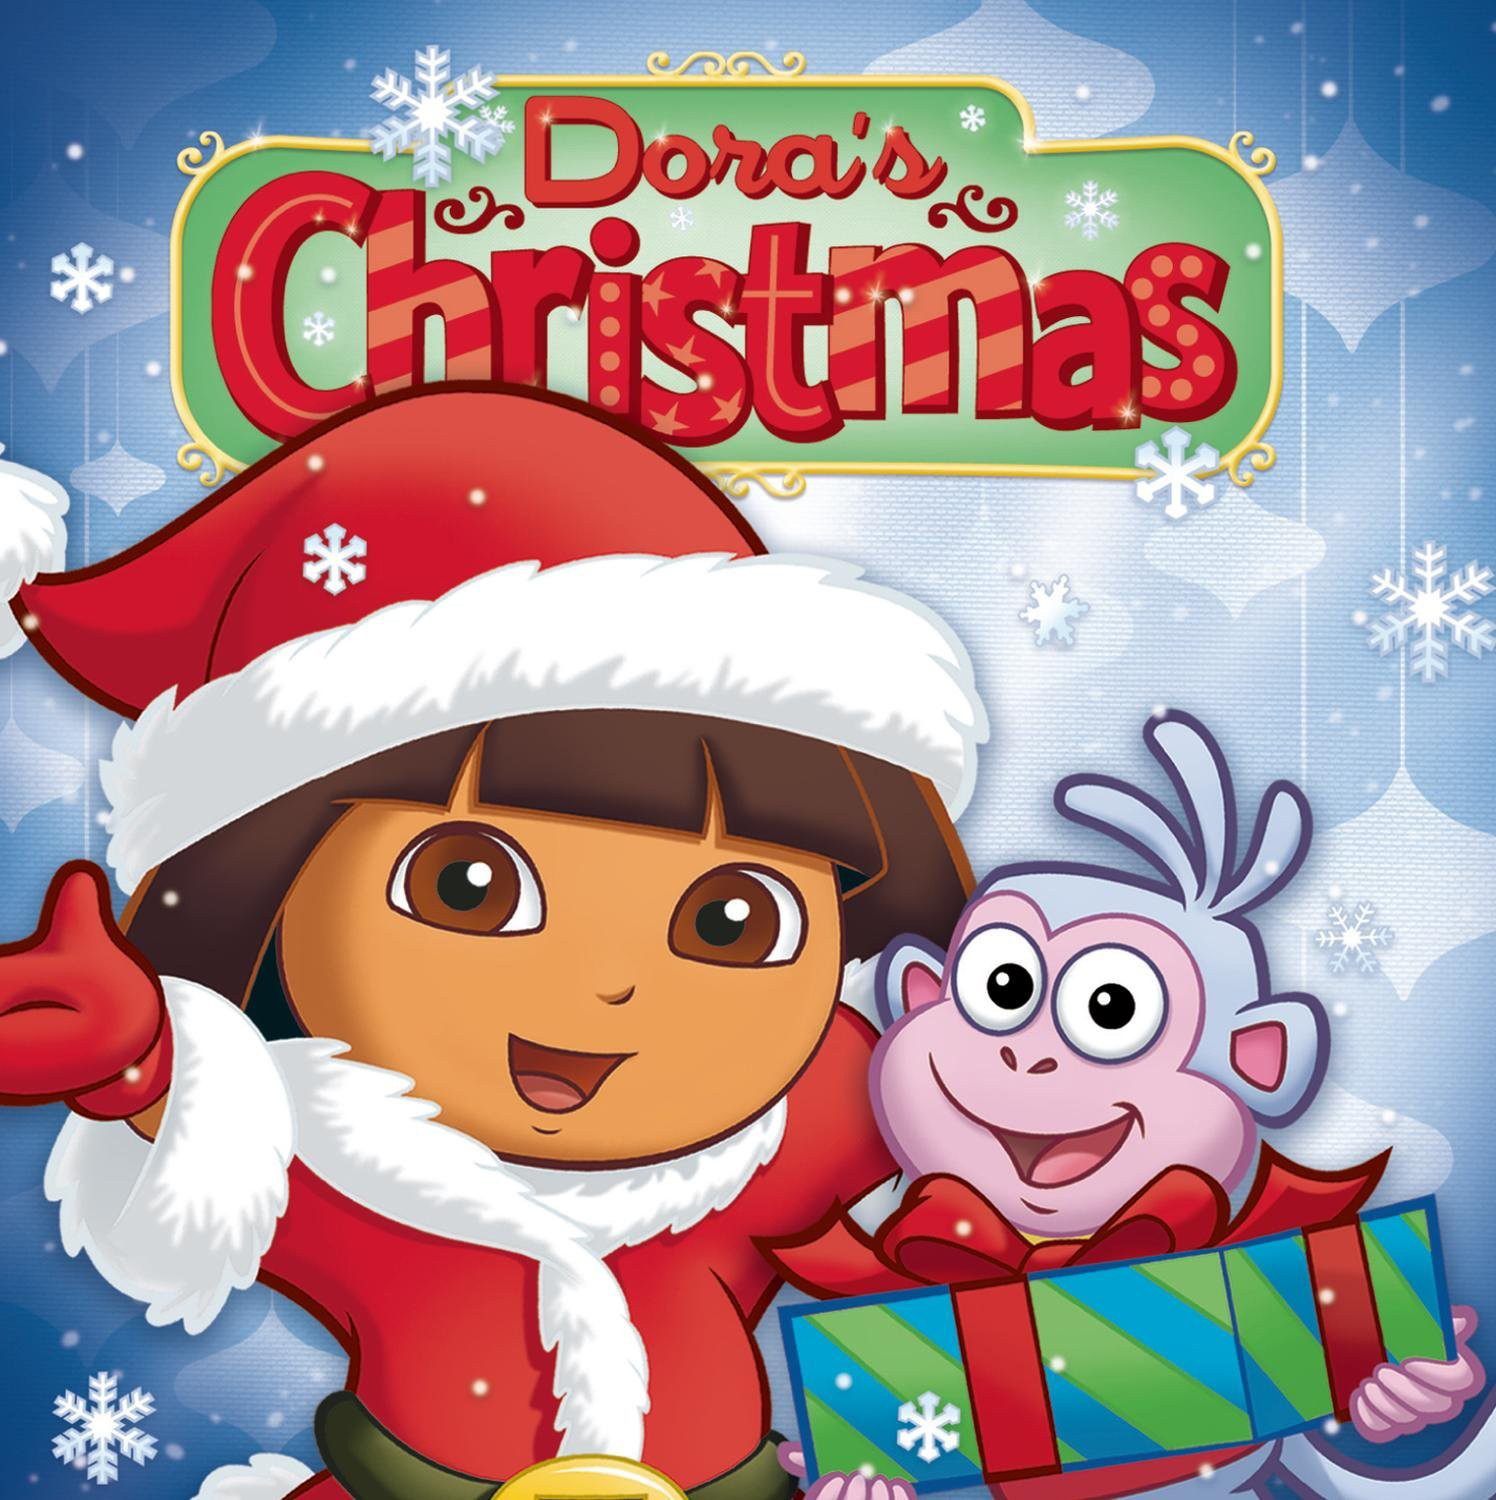 Dora's Christmas (Album) | Dora the Explorer Wiki | FANDOM powered ...